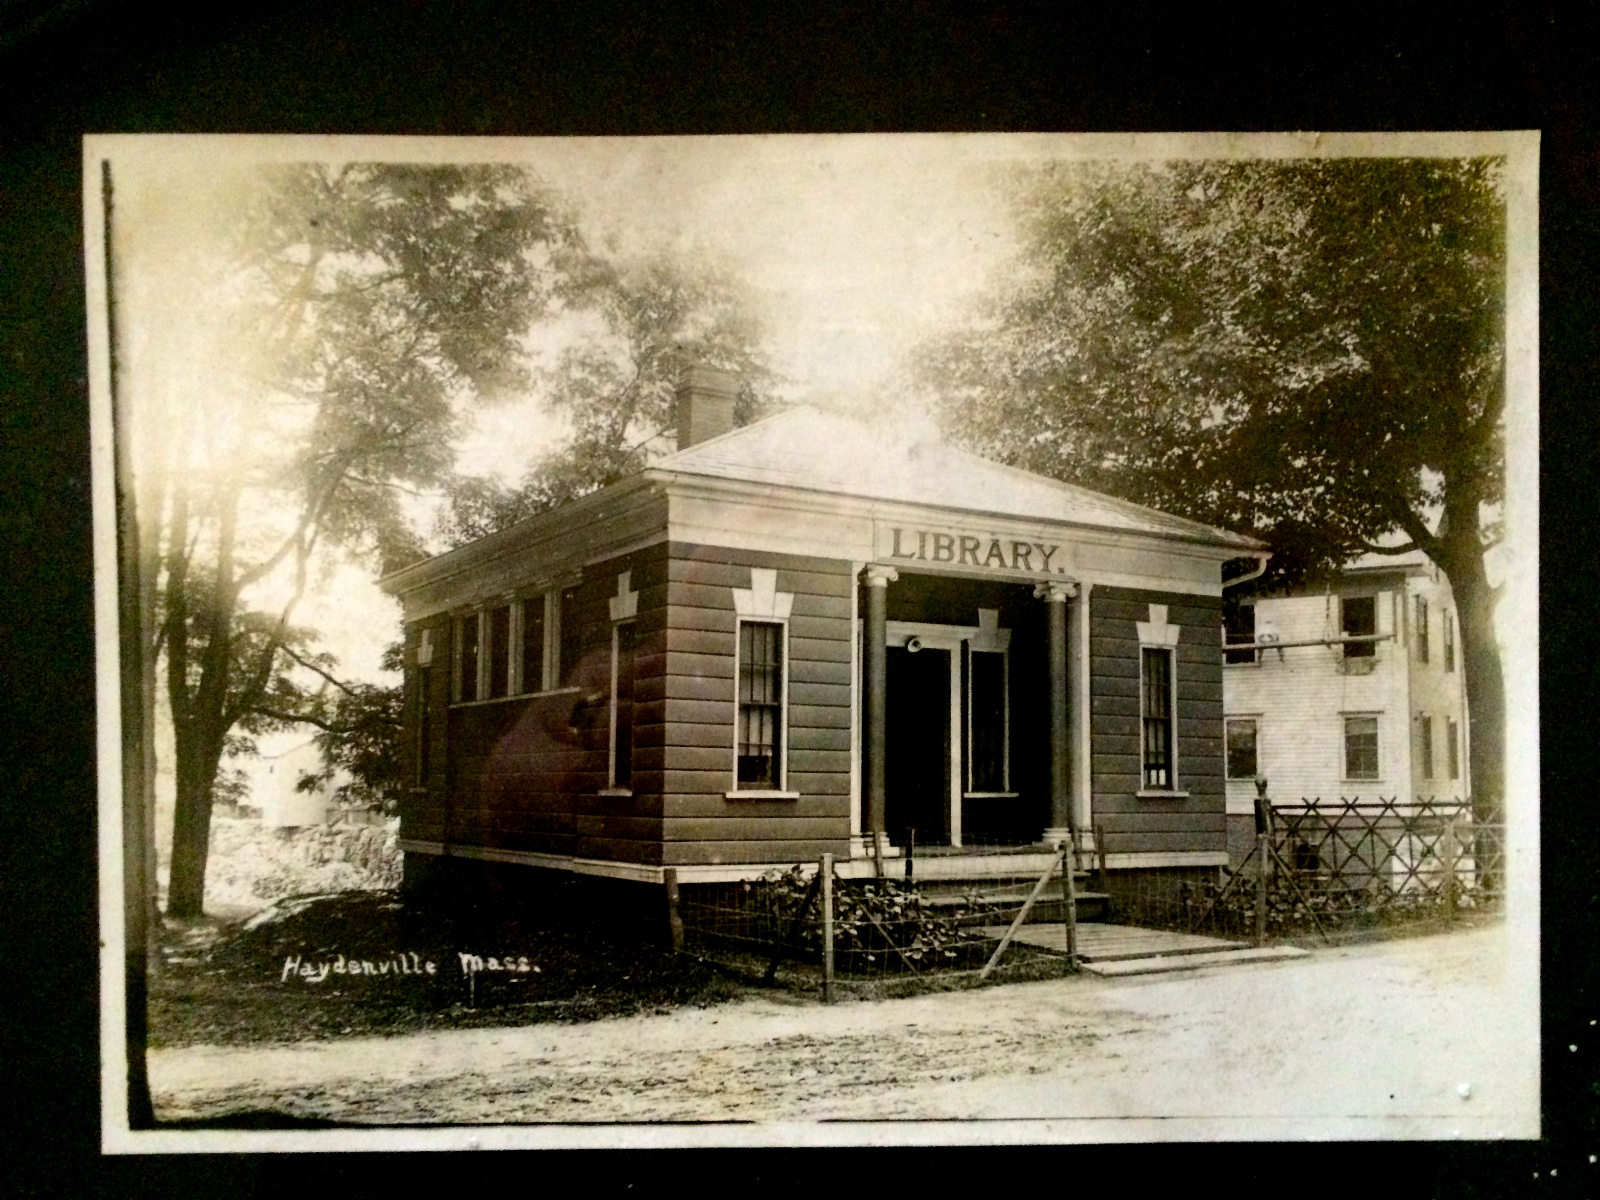 Early photograph of the Haydenville Library